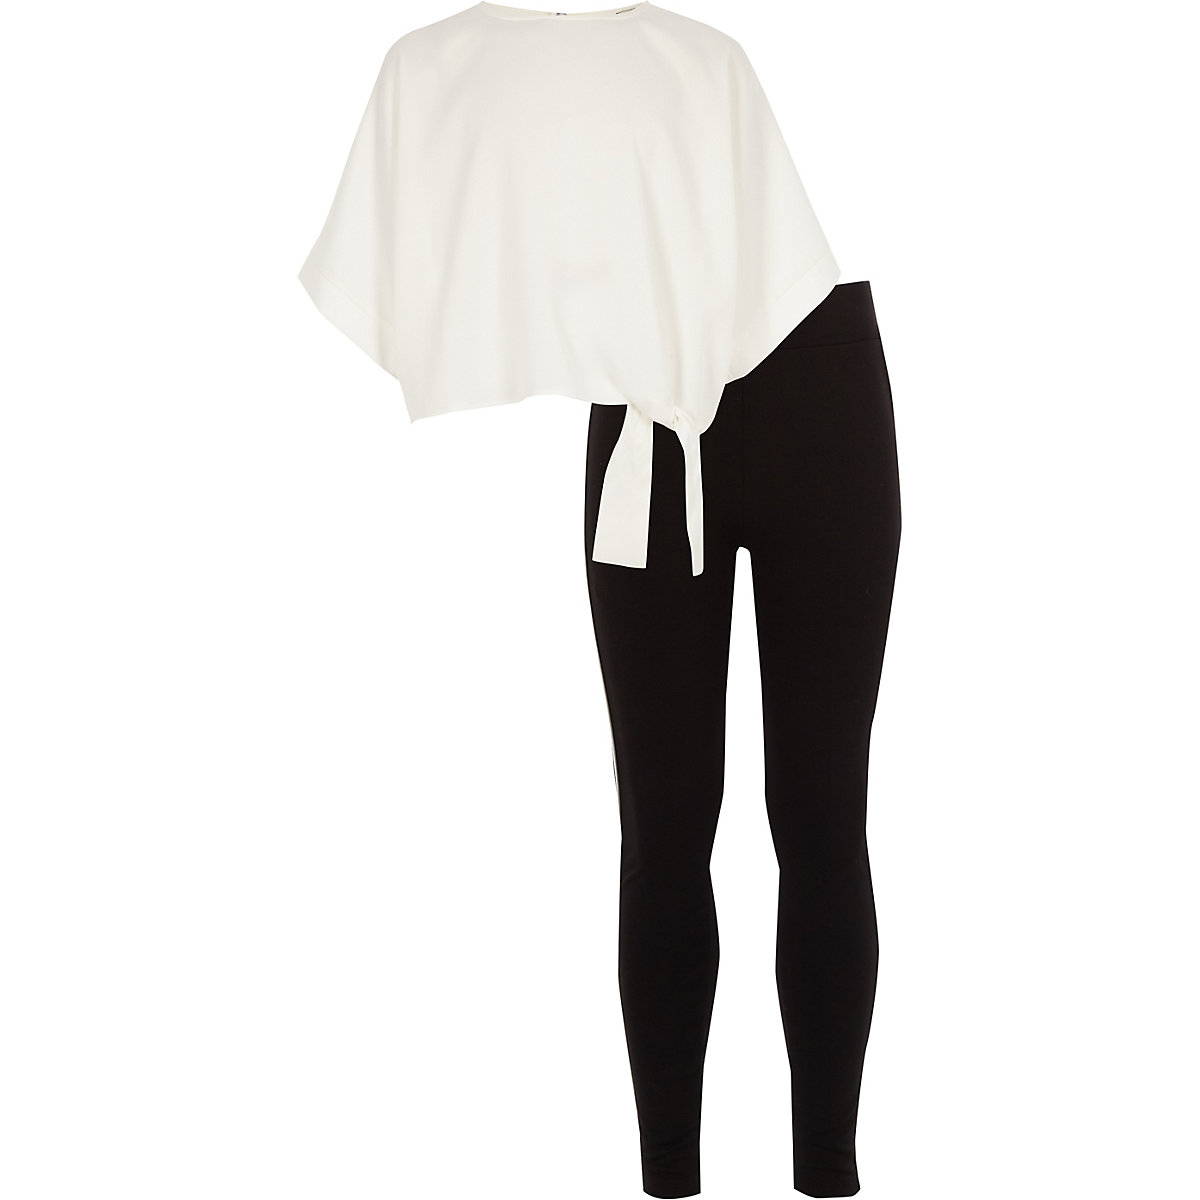 Girls white tie side T-shirt outfit